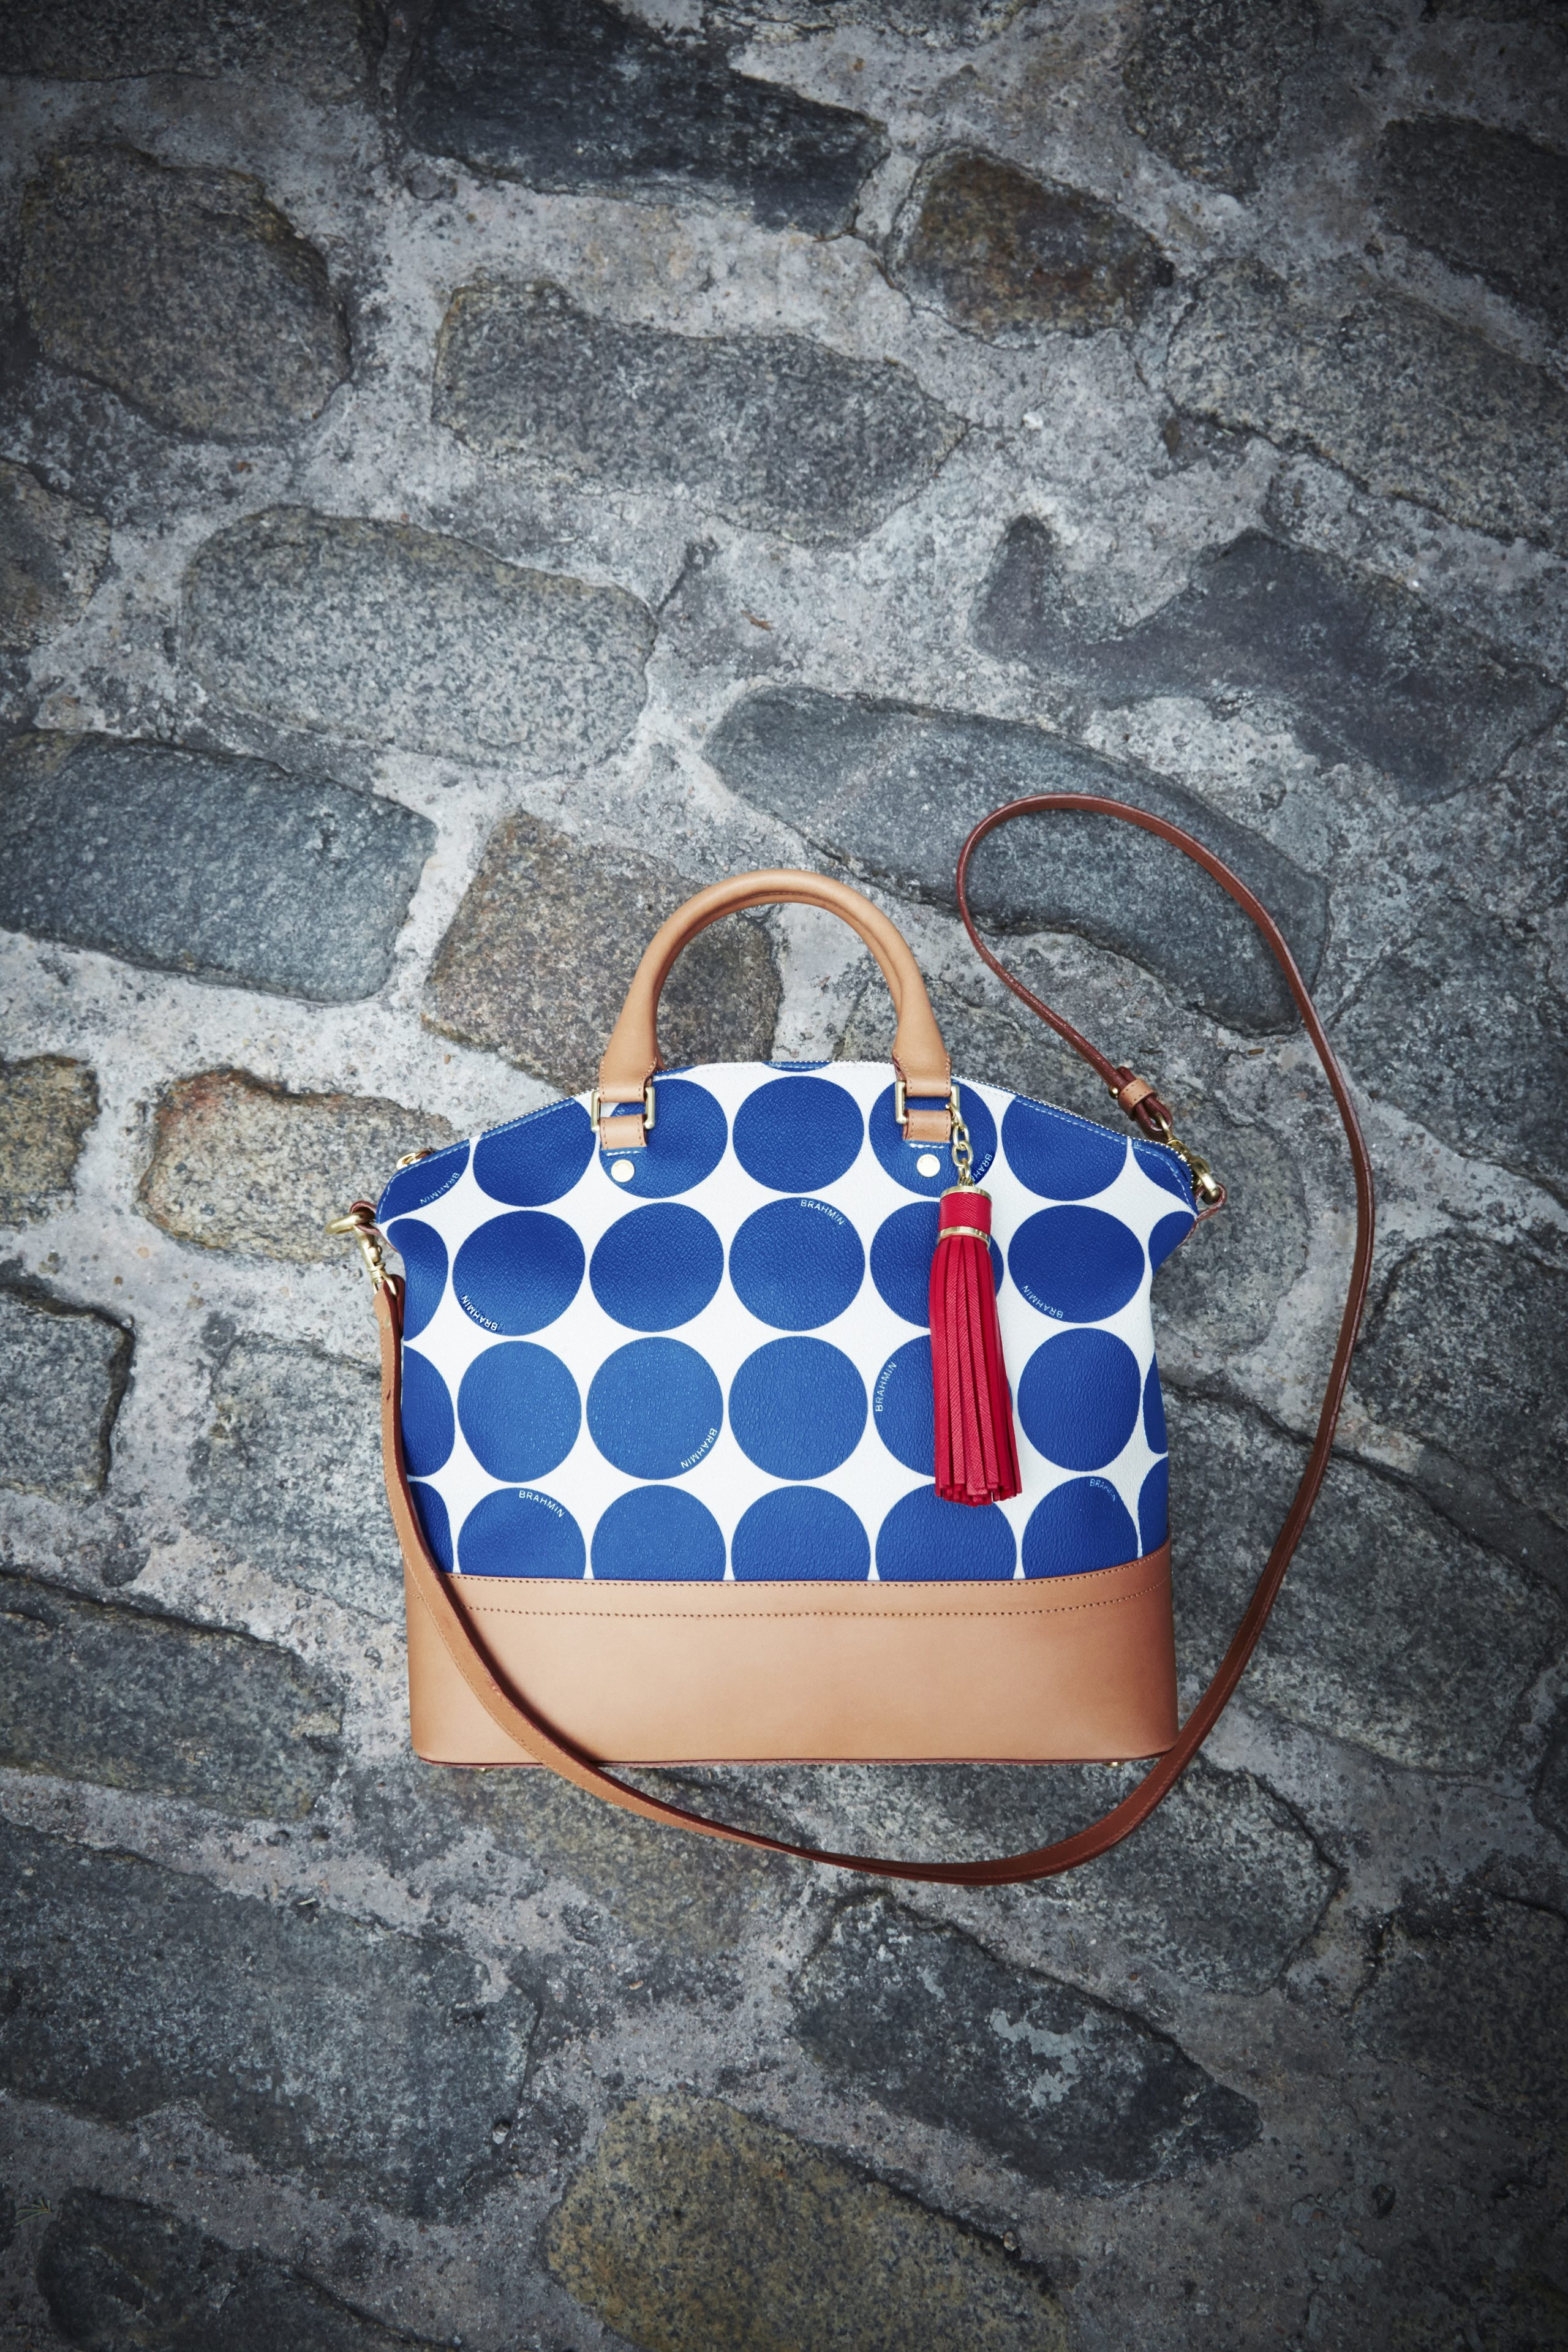 Tired of polka dots? Never. This perky pattern looks fresh season after season. The Brahmin satchel, above, is from www.macys.com.